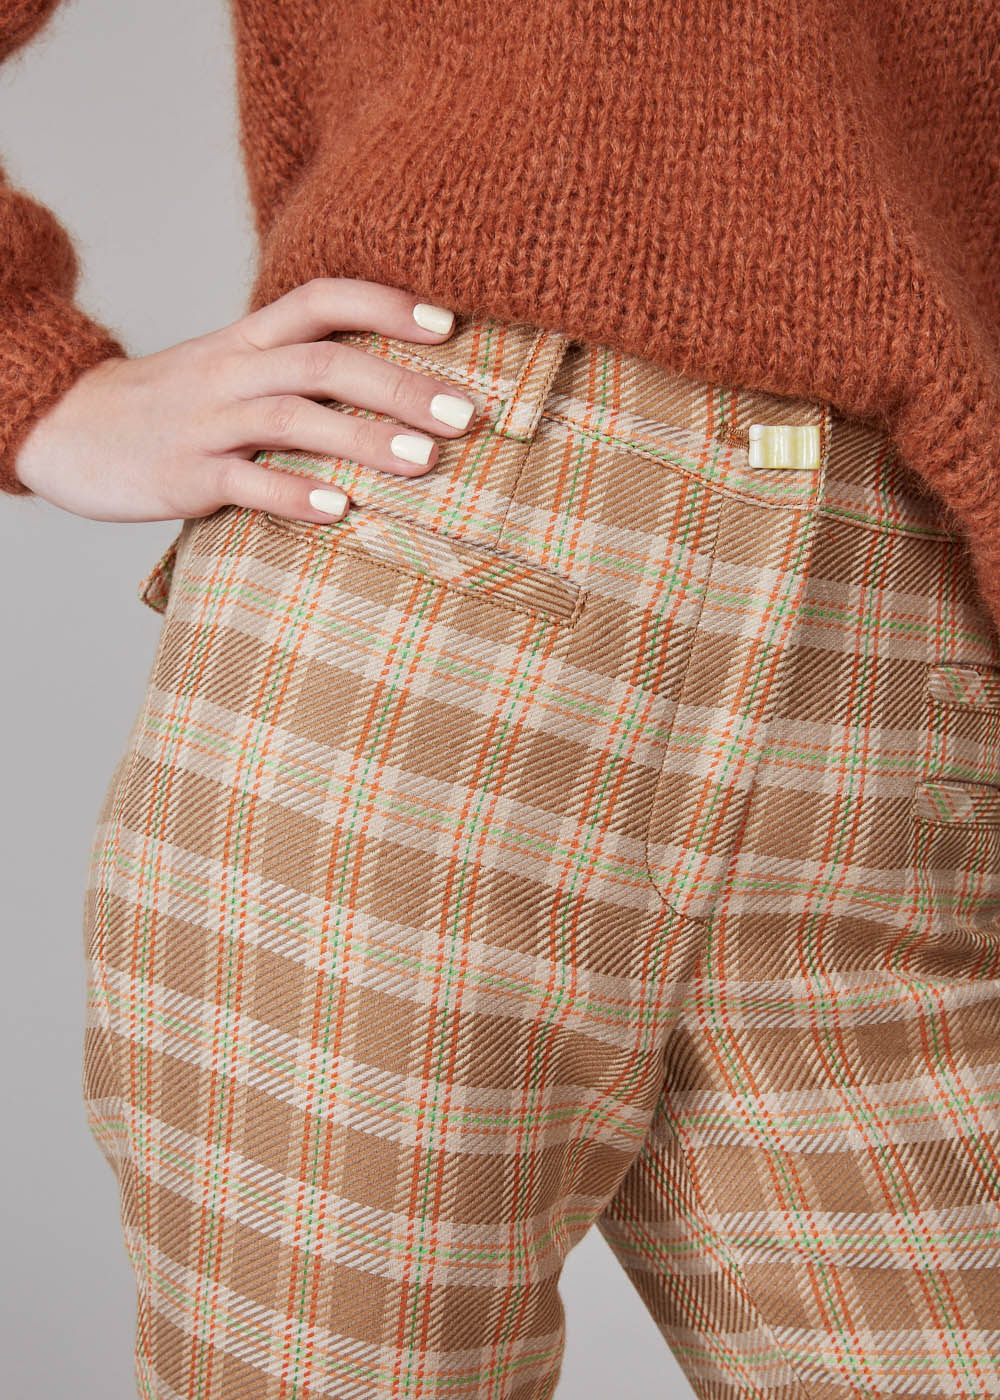 REJINA PYO - Finley pants - twill check camel/orange/green